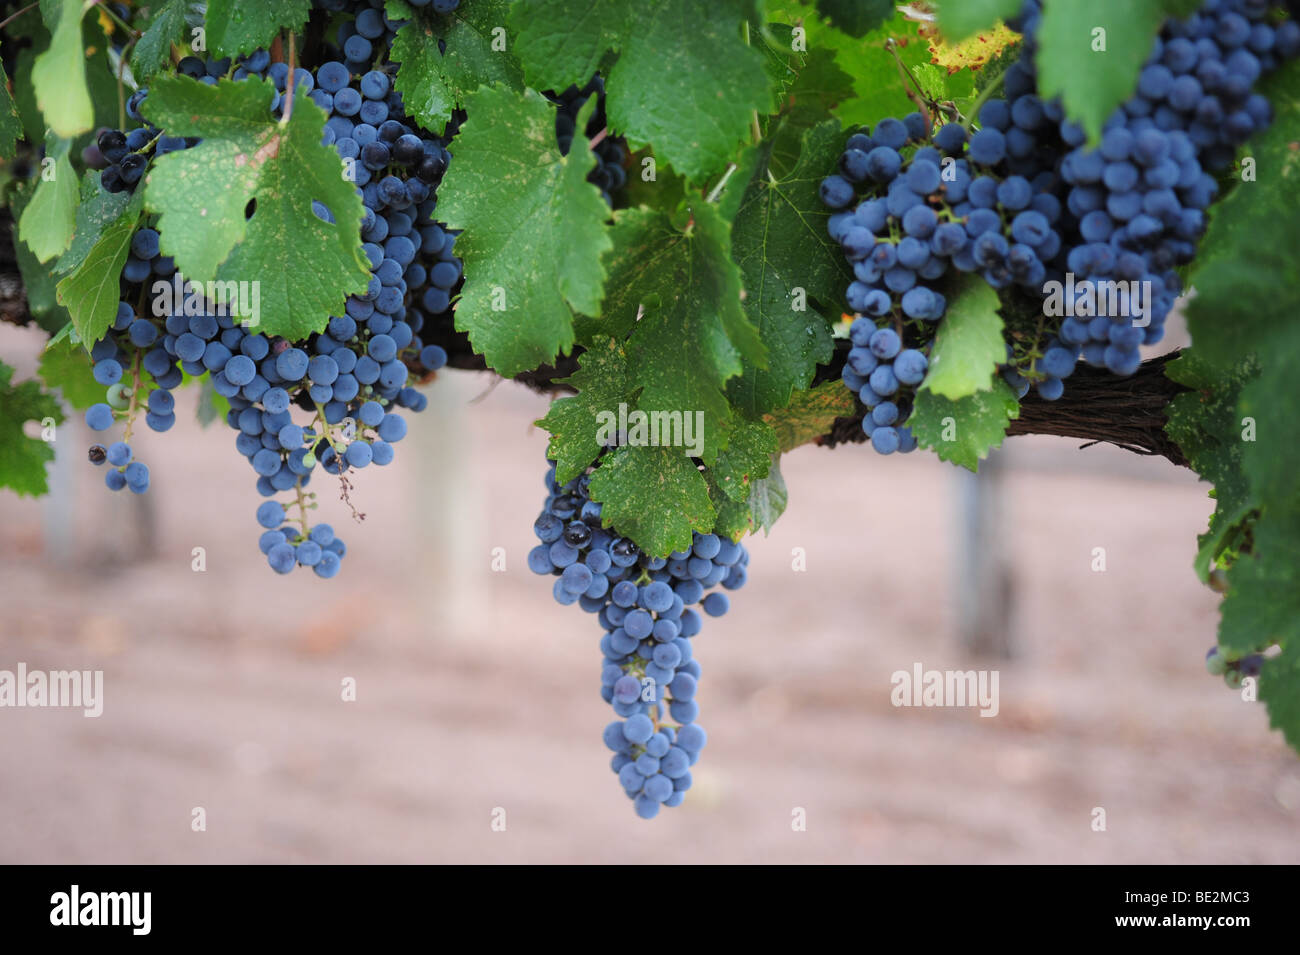 red-wine-grapes-on-the-vine-casa-rondena-winery-albuquerque-new-mexico-BE2MC3.jpg